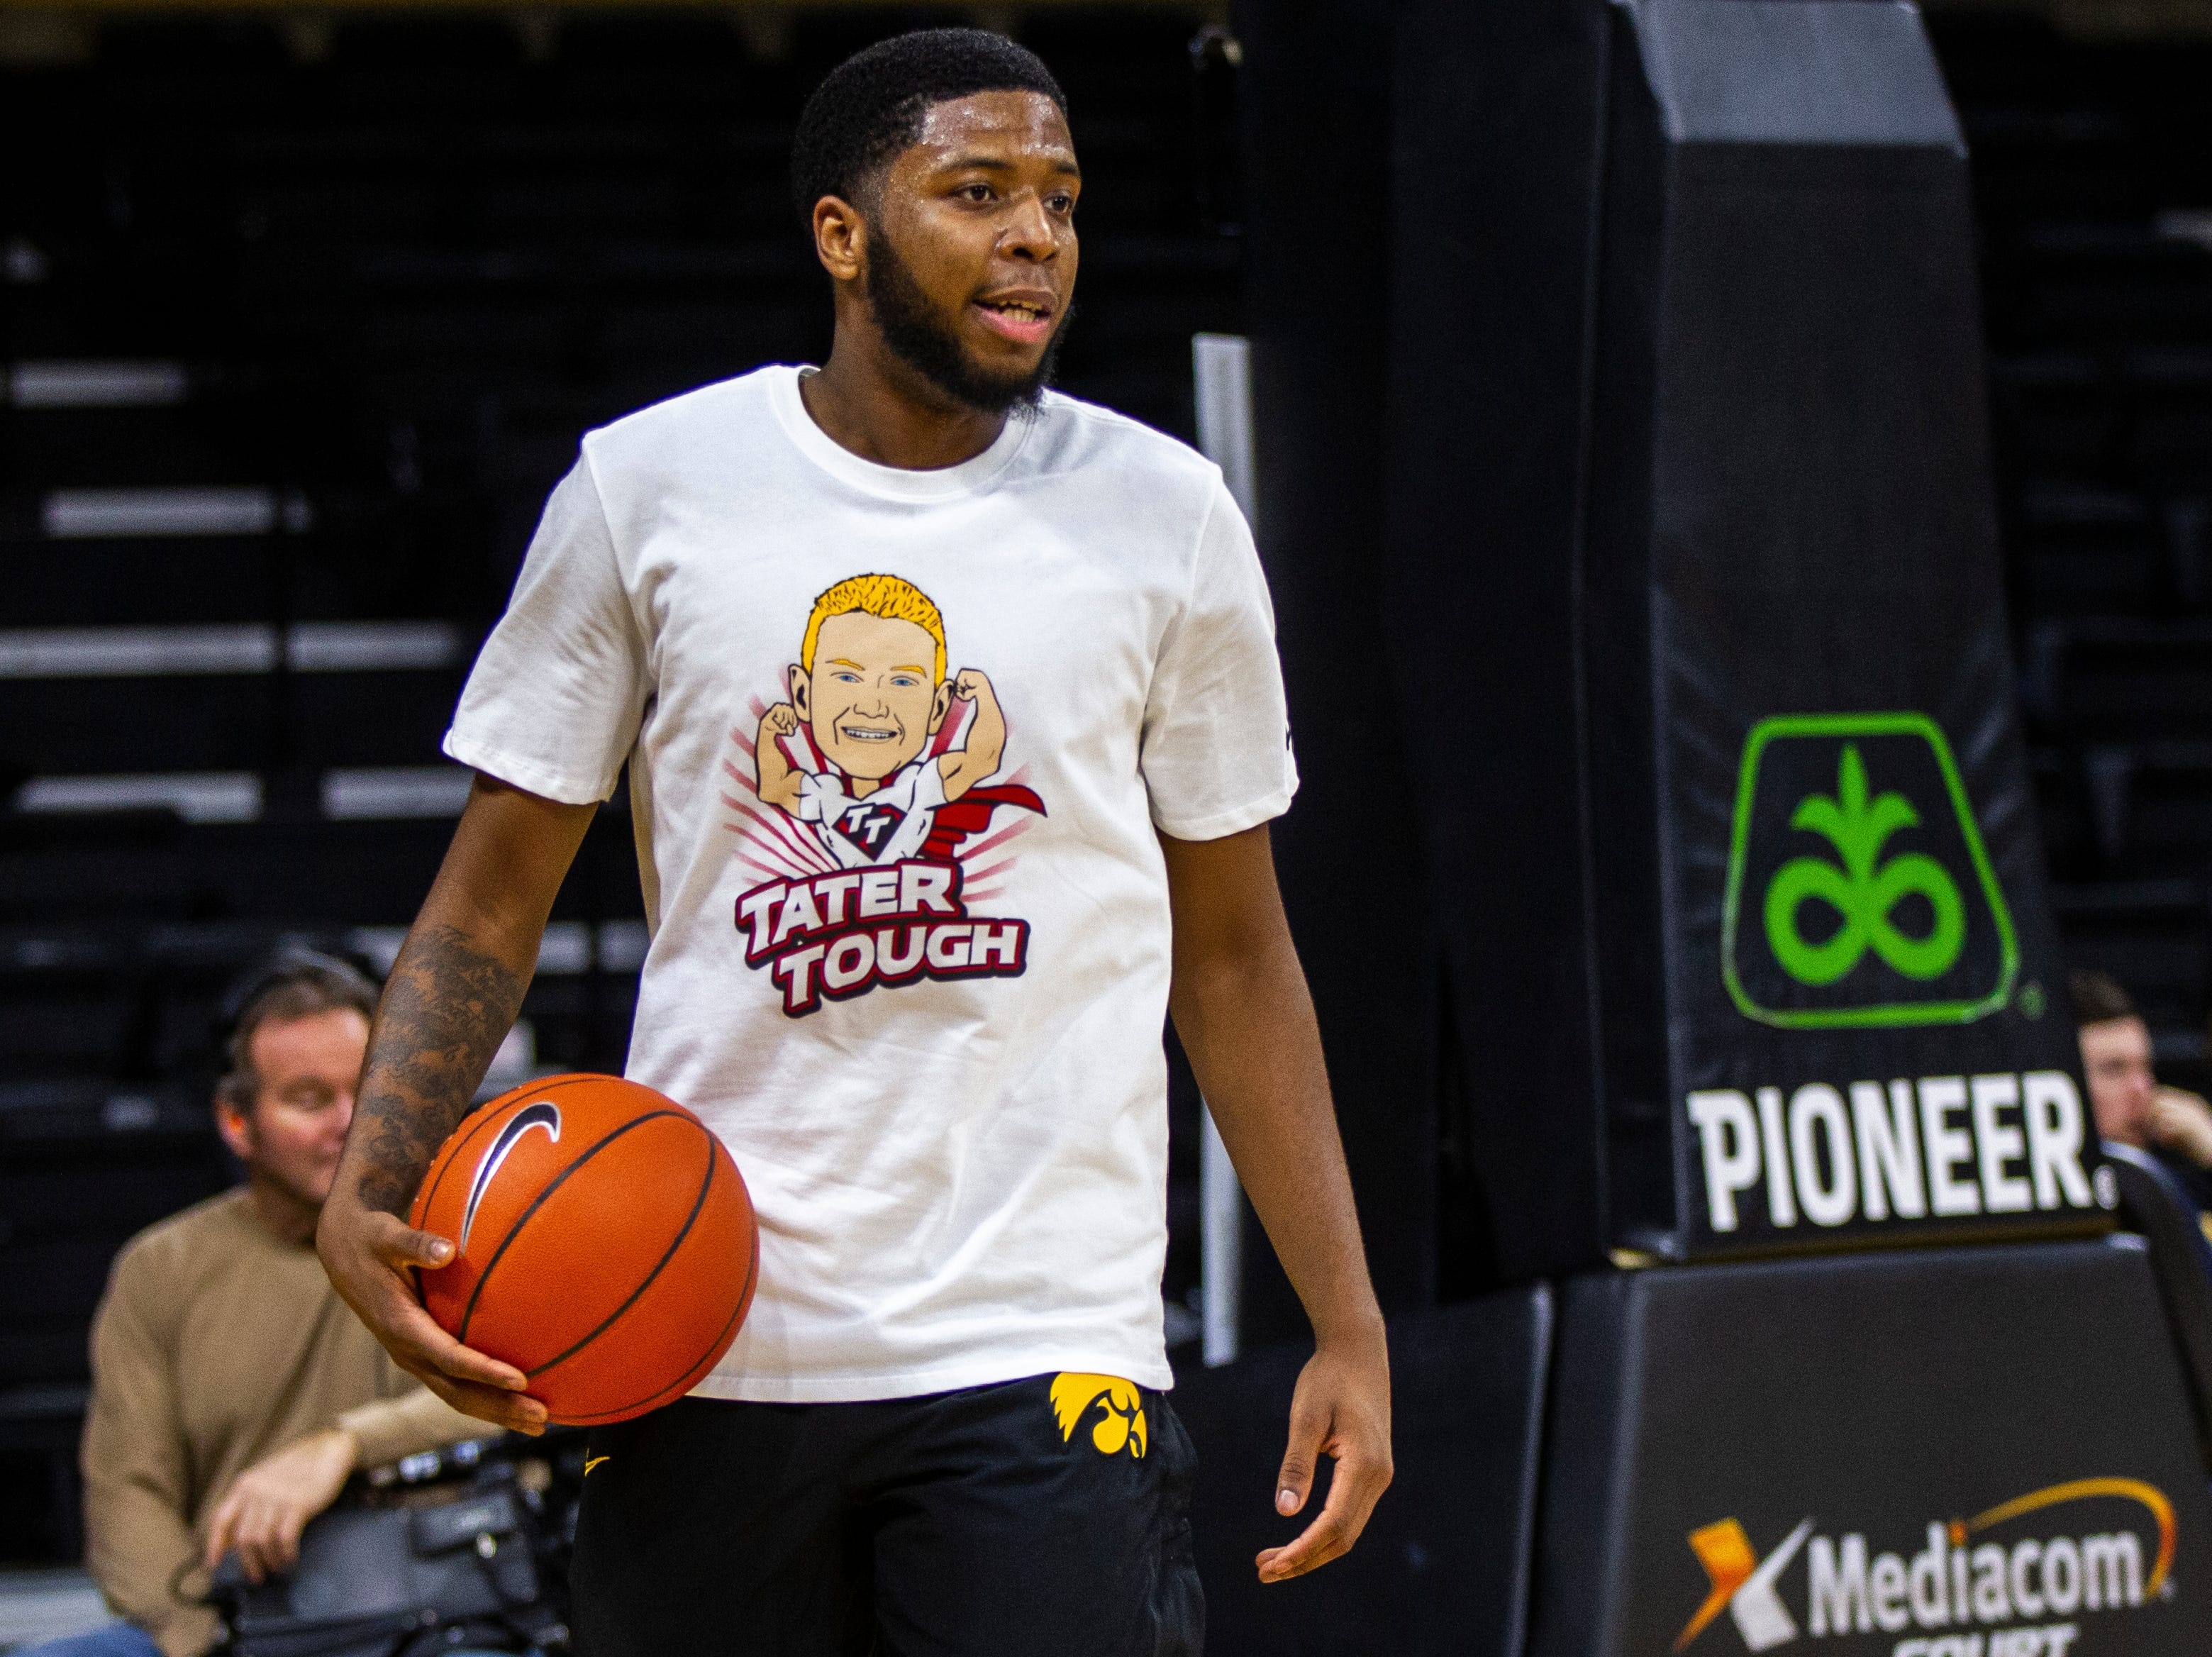 Iowa guard Isaiah Moss (4) warms up while wearing a shirt featuring a logo for Tate Schaefer, an 11-year-old from Williamsburg who has a tumor in his brain before a NCAA Big Ten Conference men's basketball game on Sunday, Jan. 6, 2019, at the Carver-Hawkeye Arena in Iowa City, Iowa.